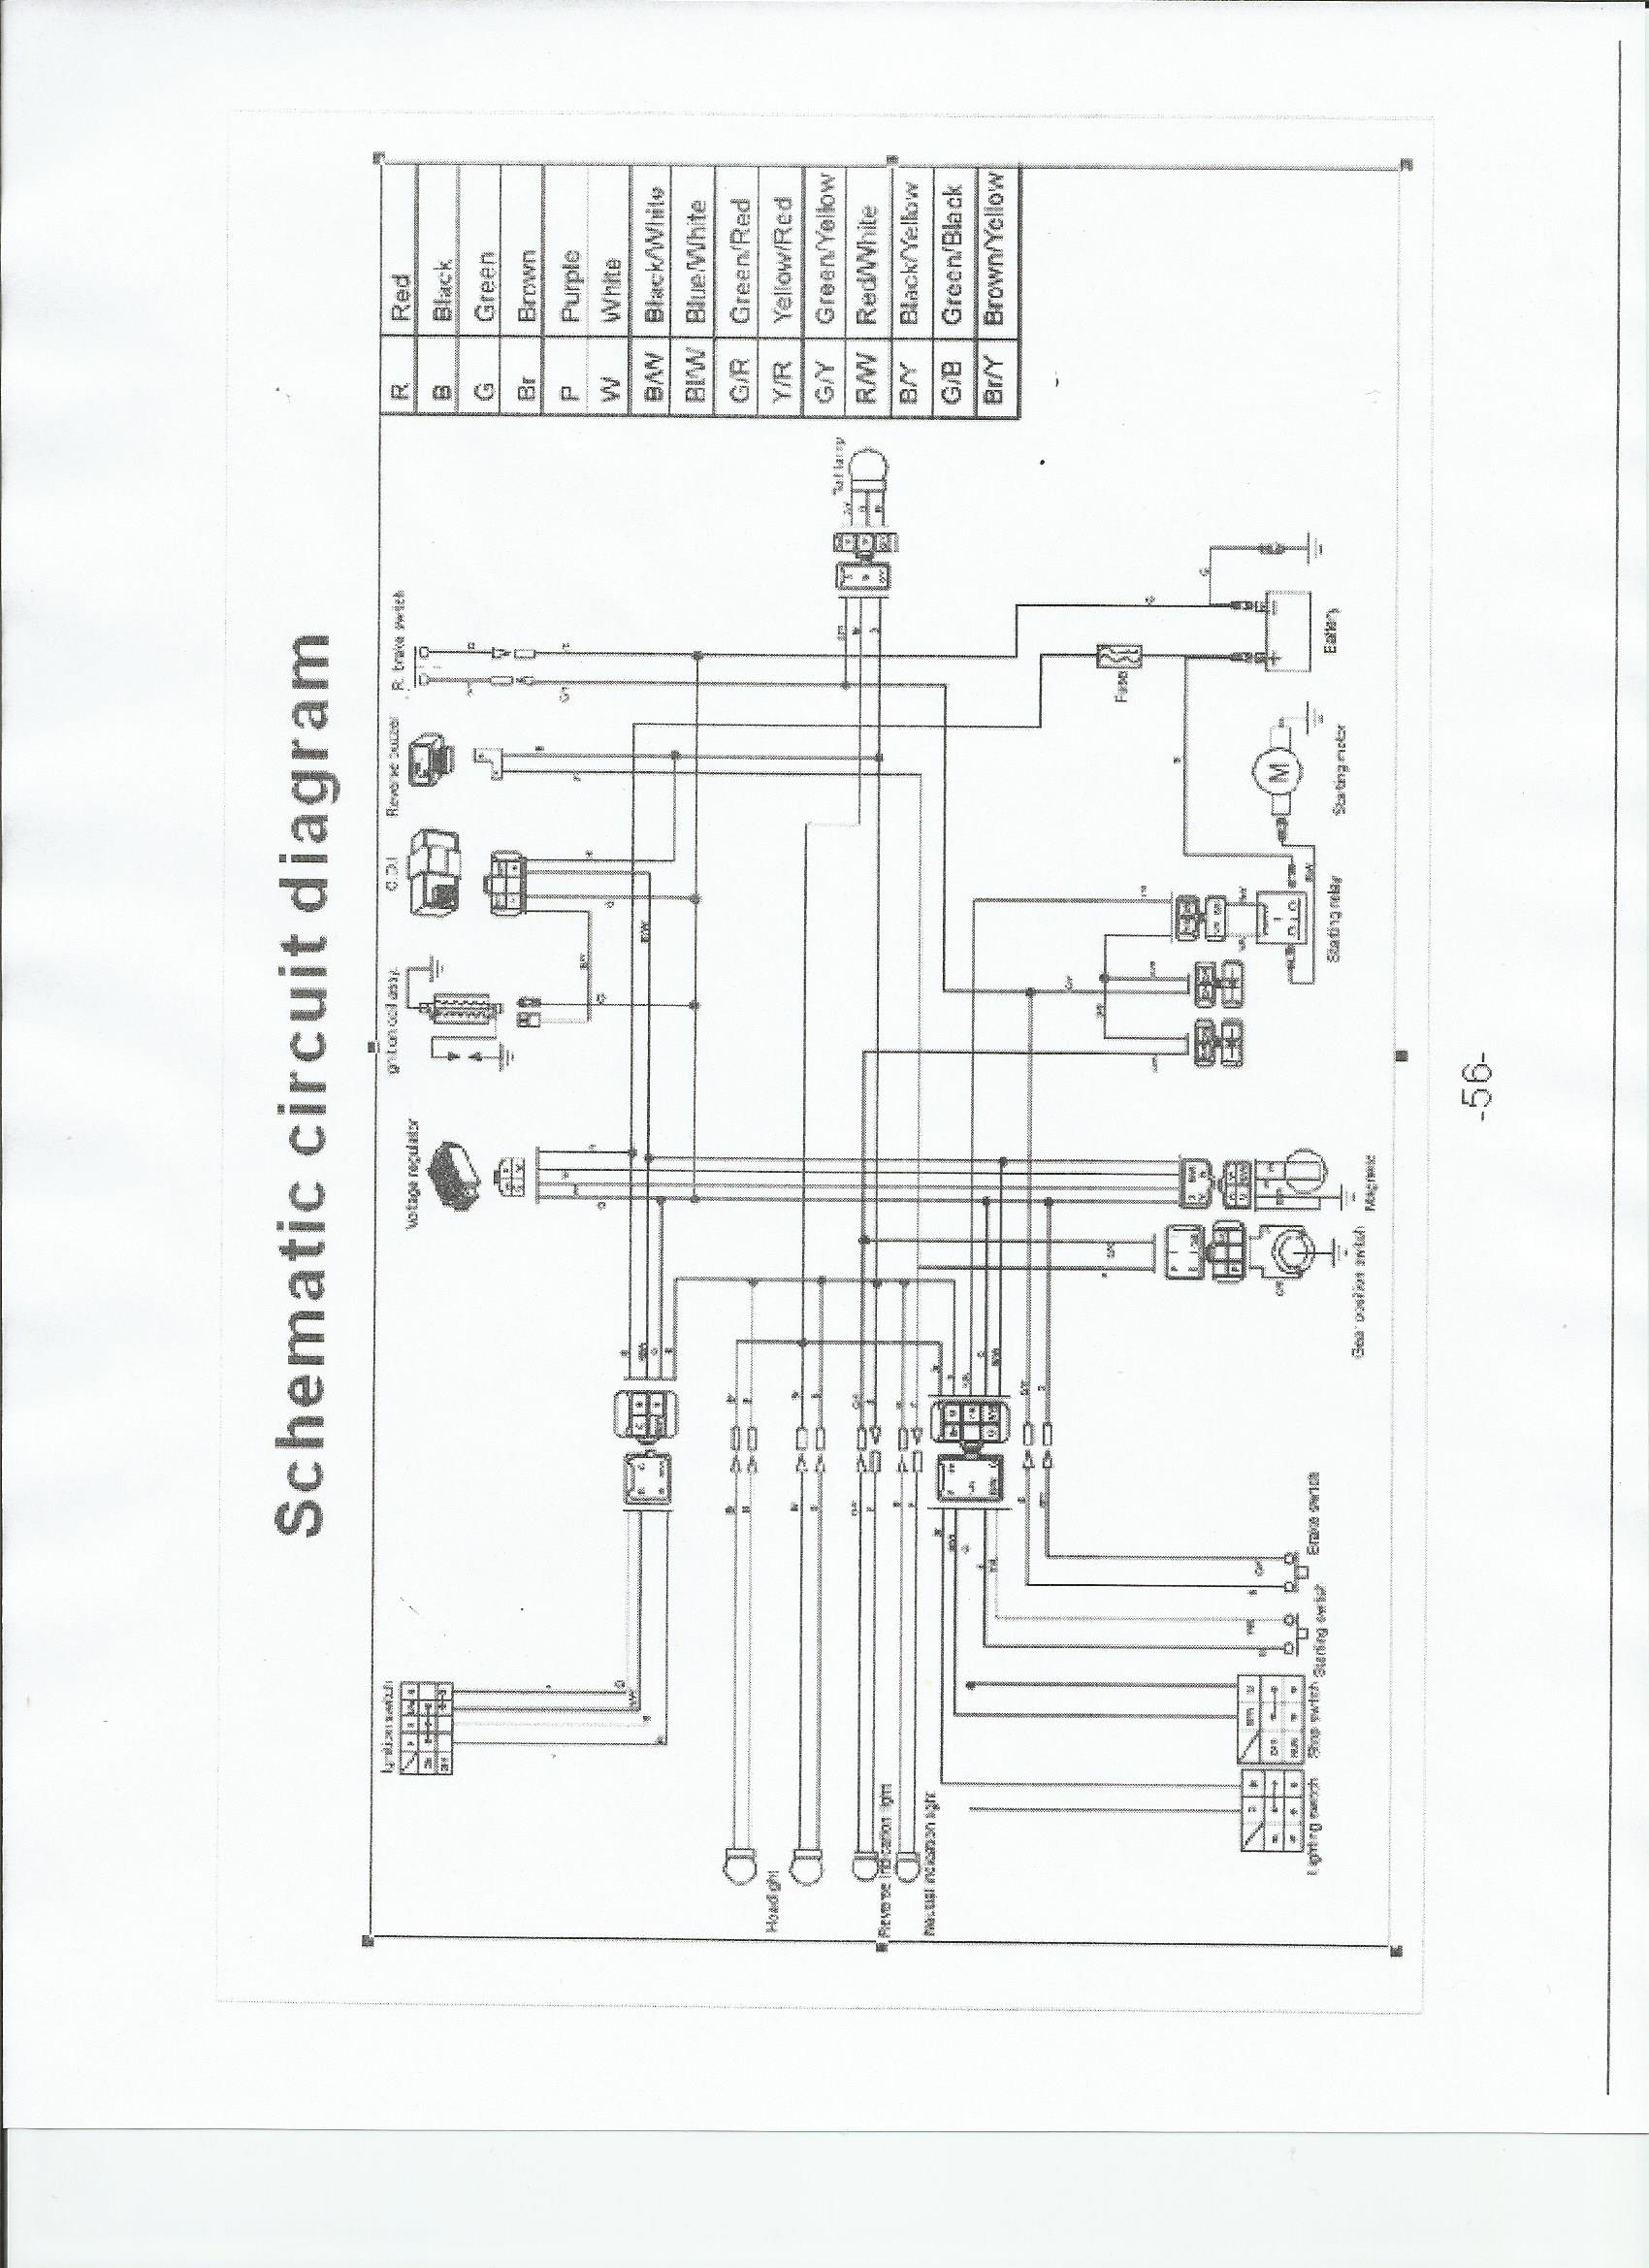 tao tao wiring schematic similiar pocket bike wiring diagram keywords readingrat net 49cc mini chopper wiring harness at gsmportal.co